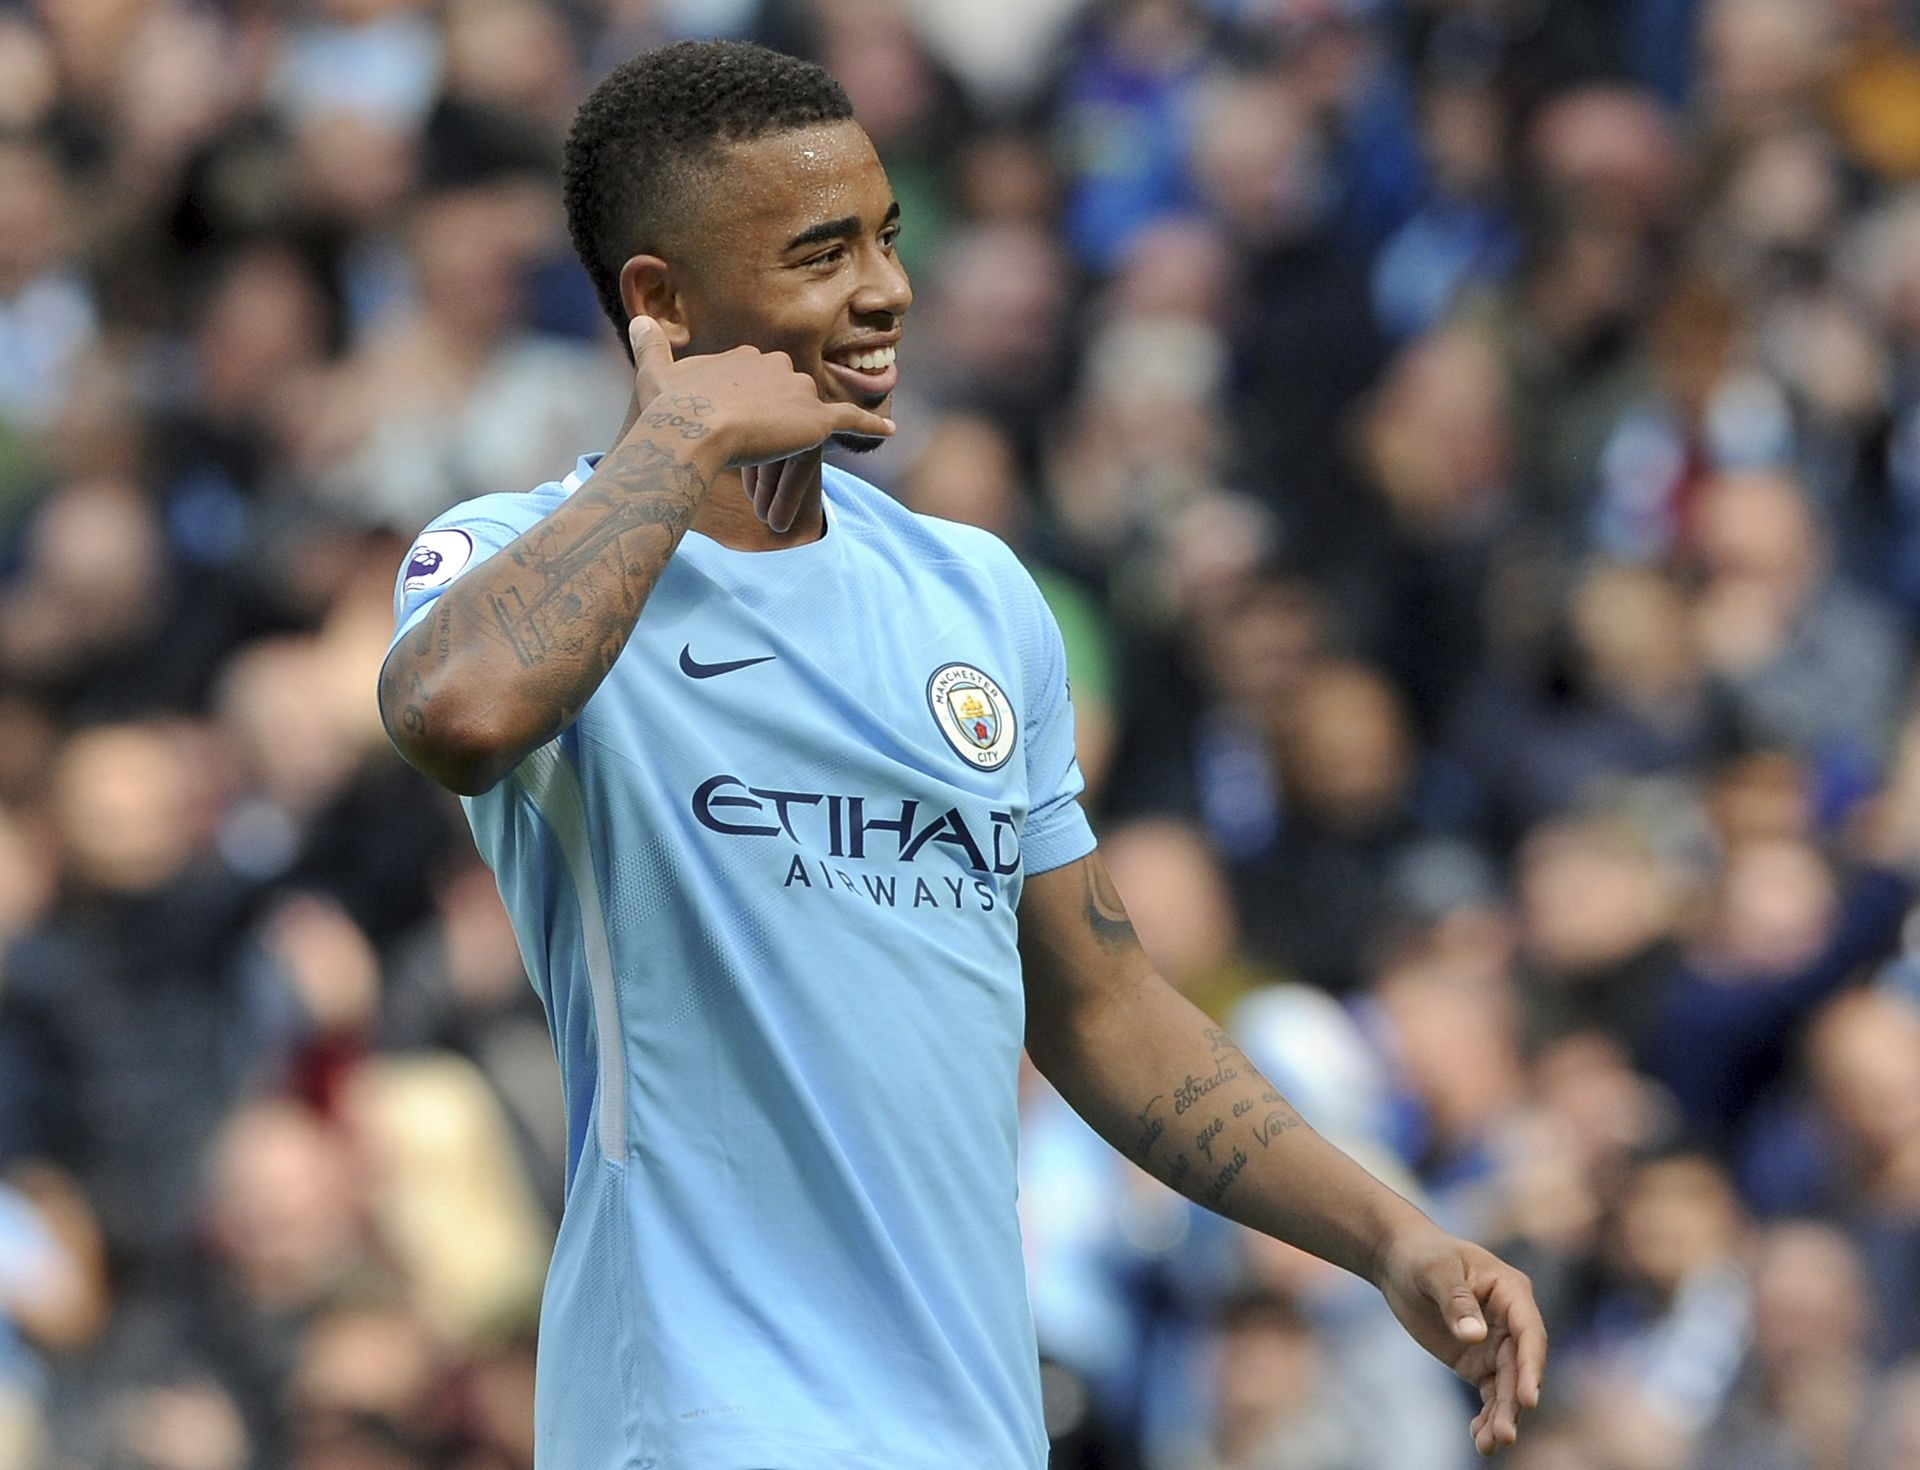 Gabriel Jesus Manchester City v Liverpool, Premier League 2017